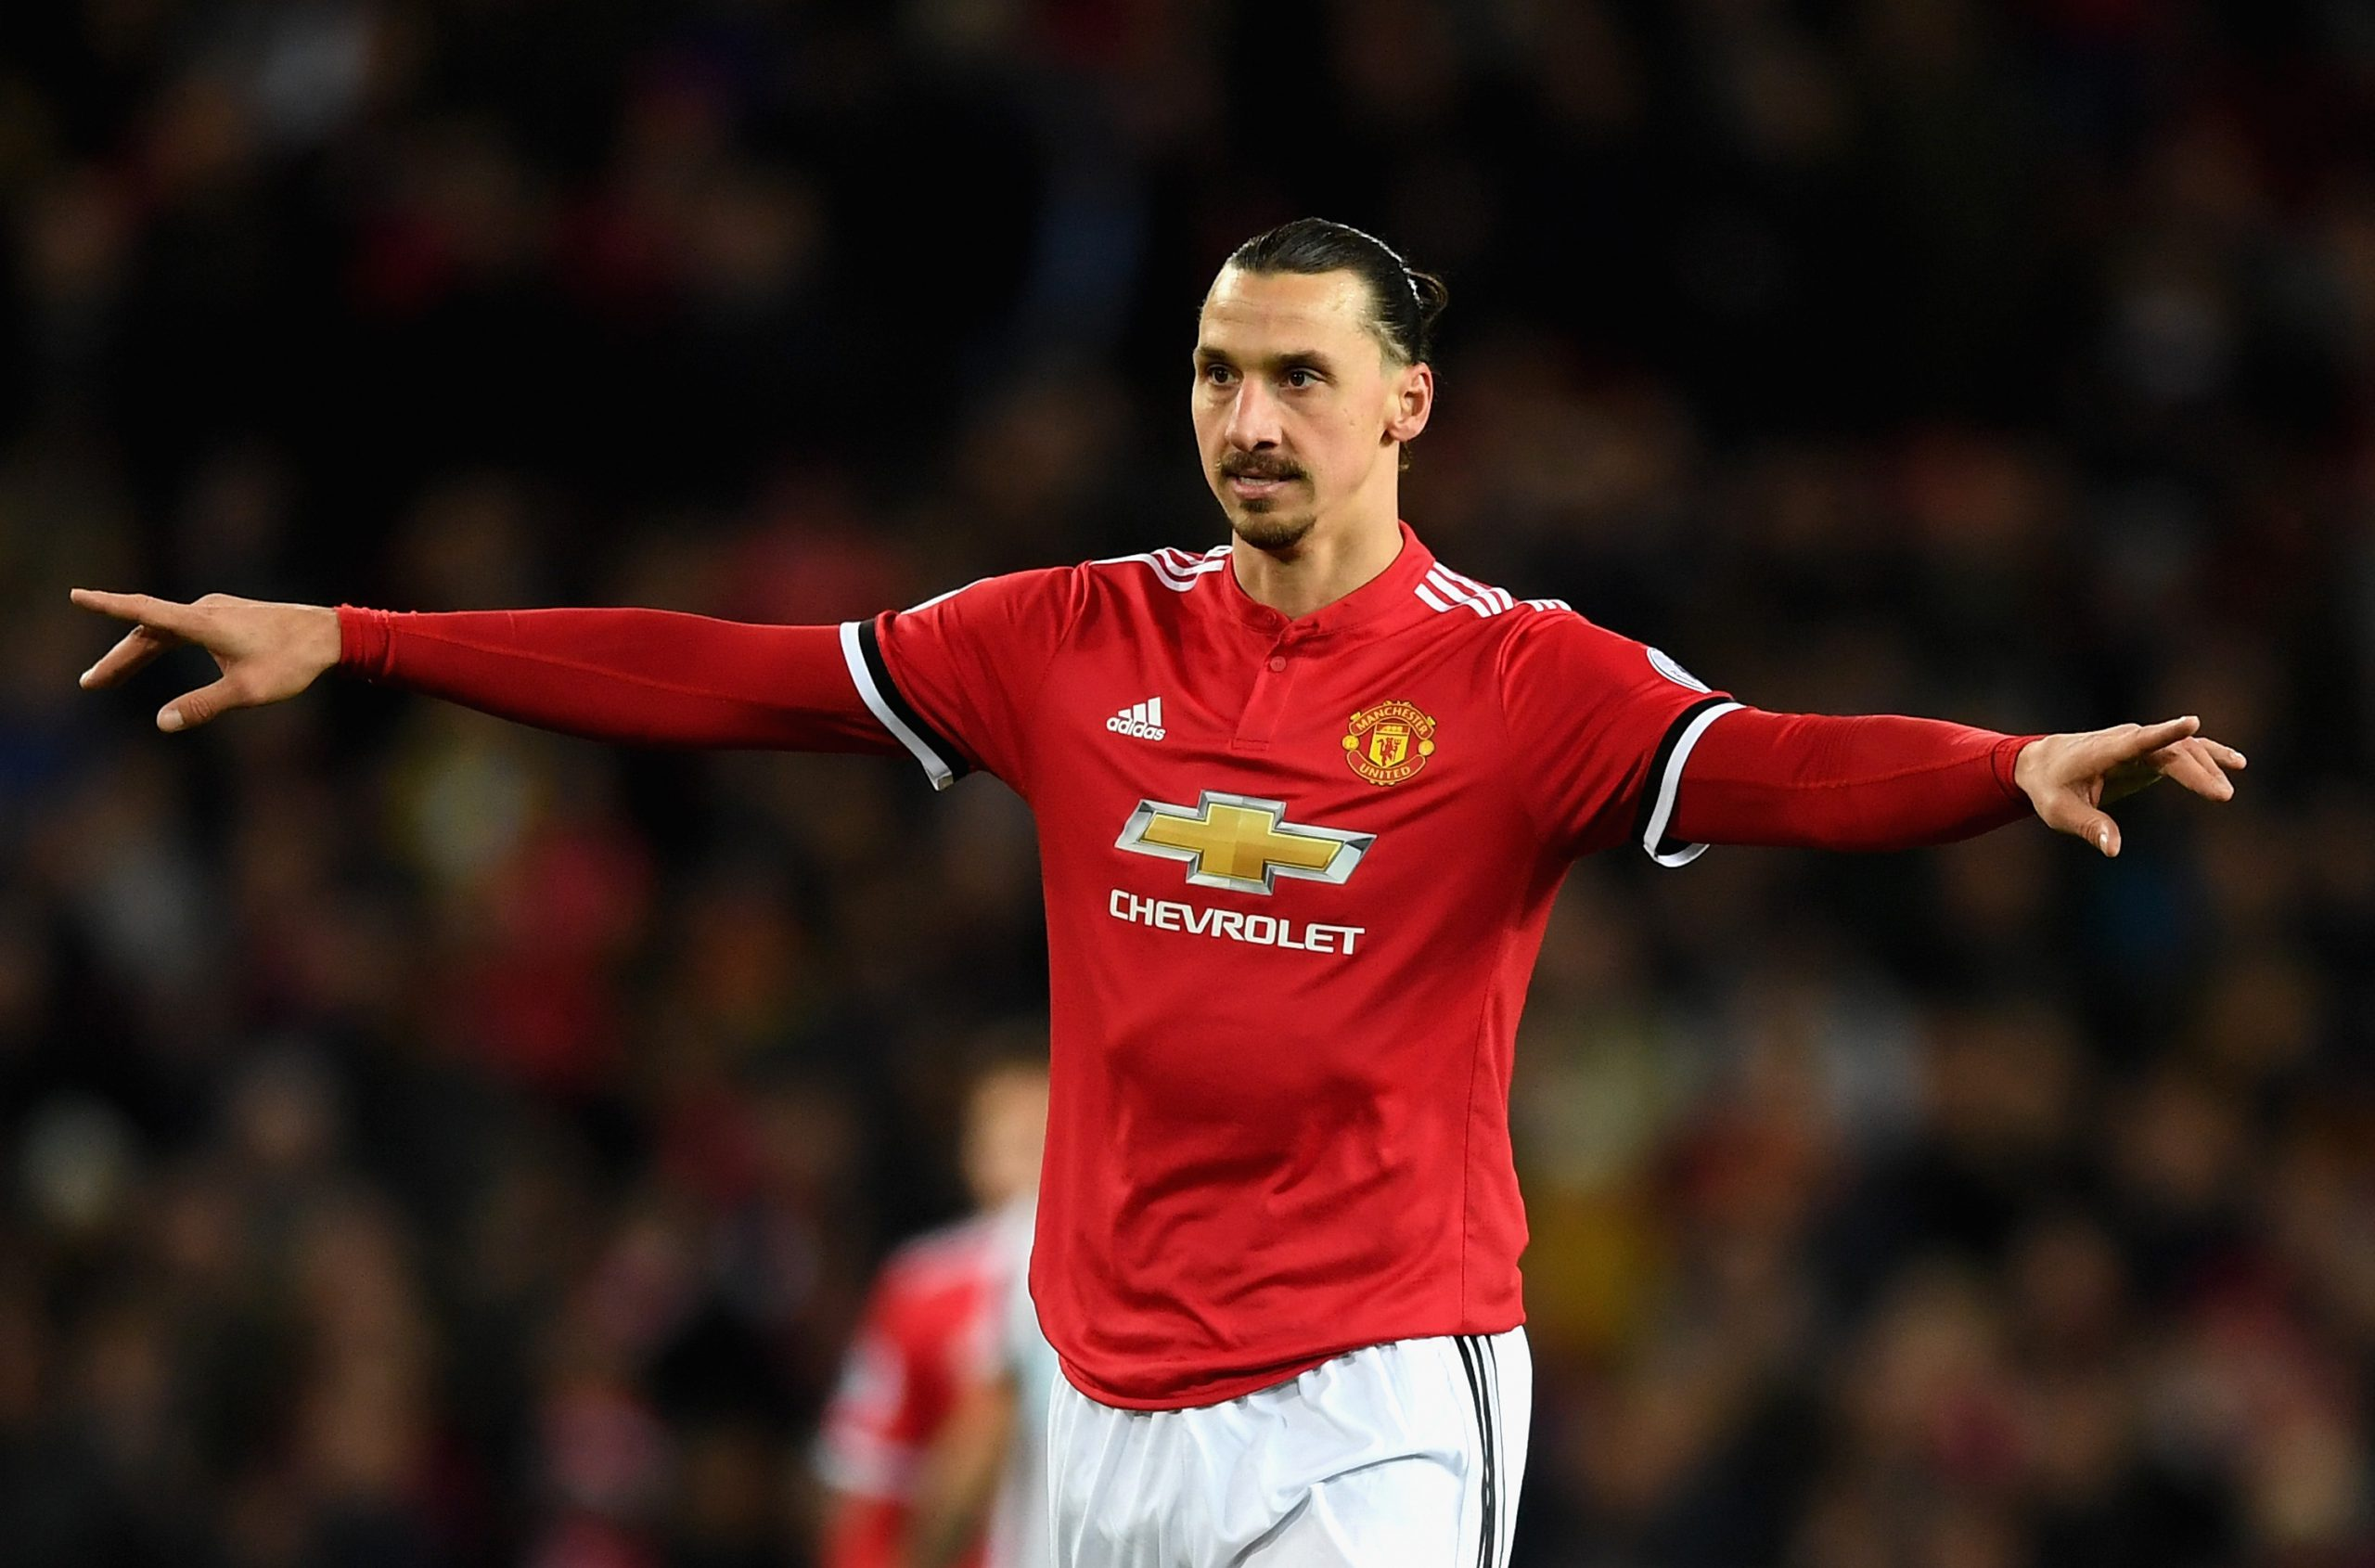 Europa League last-16: Arsenal fans react to Olympiacos draw & Ibrahimovic set for Old Trafford return